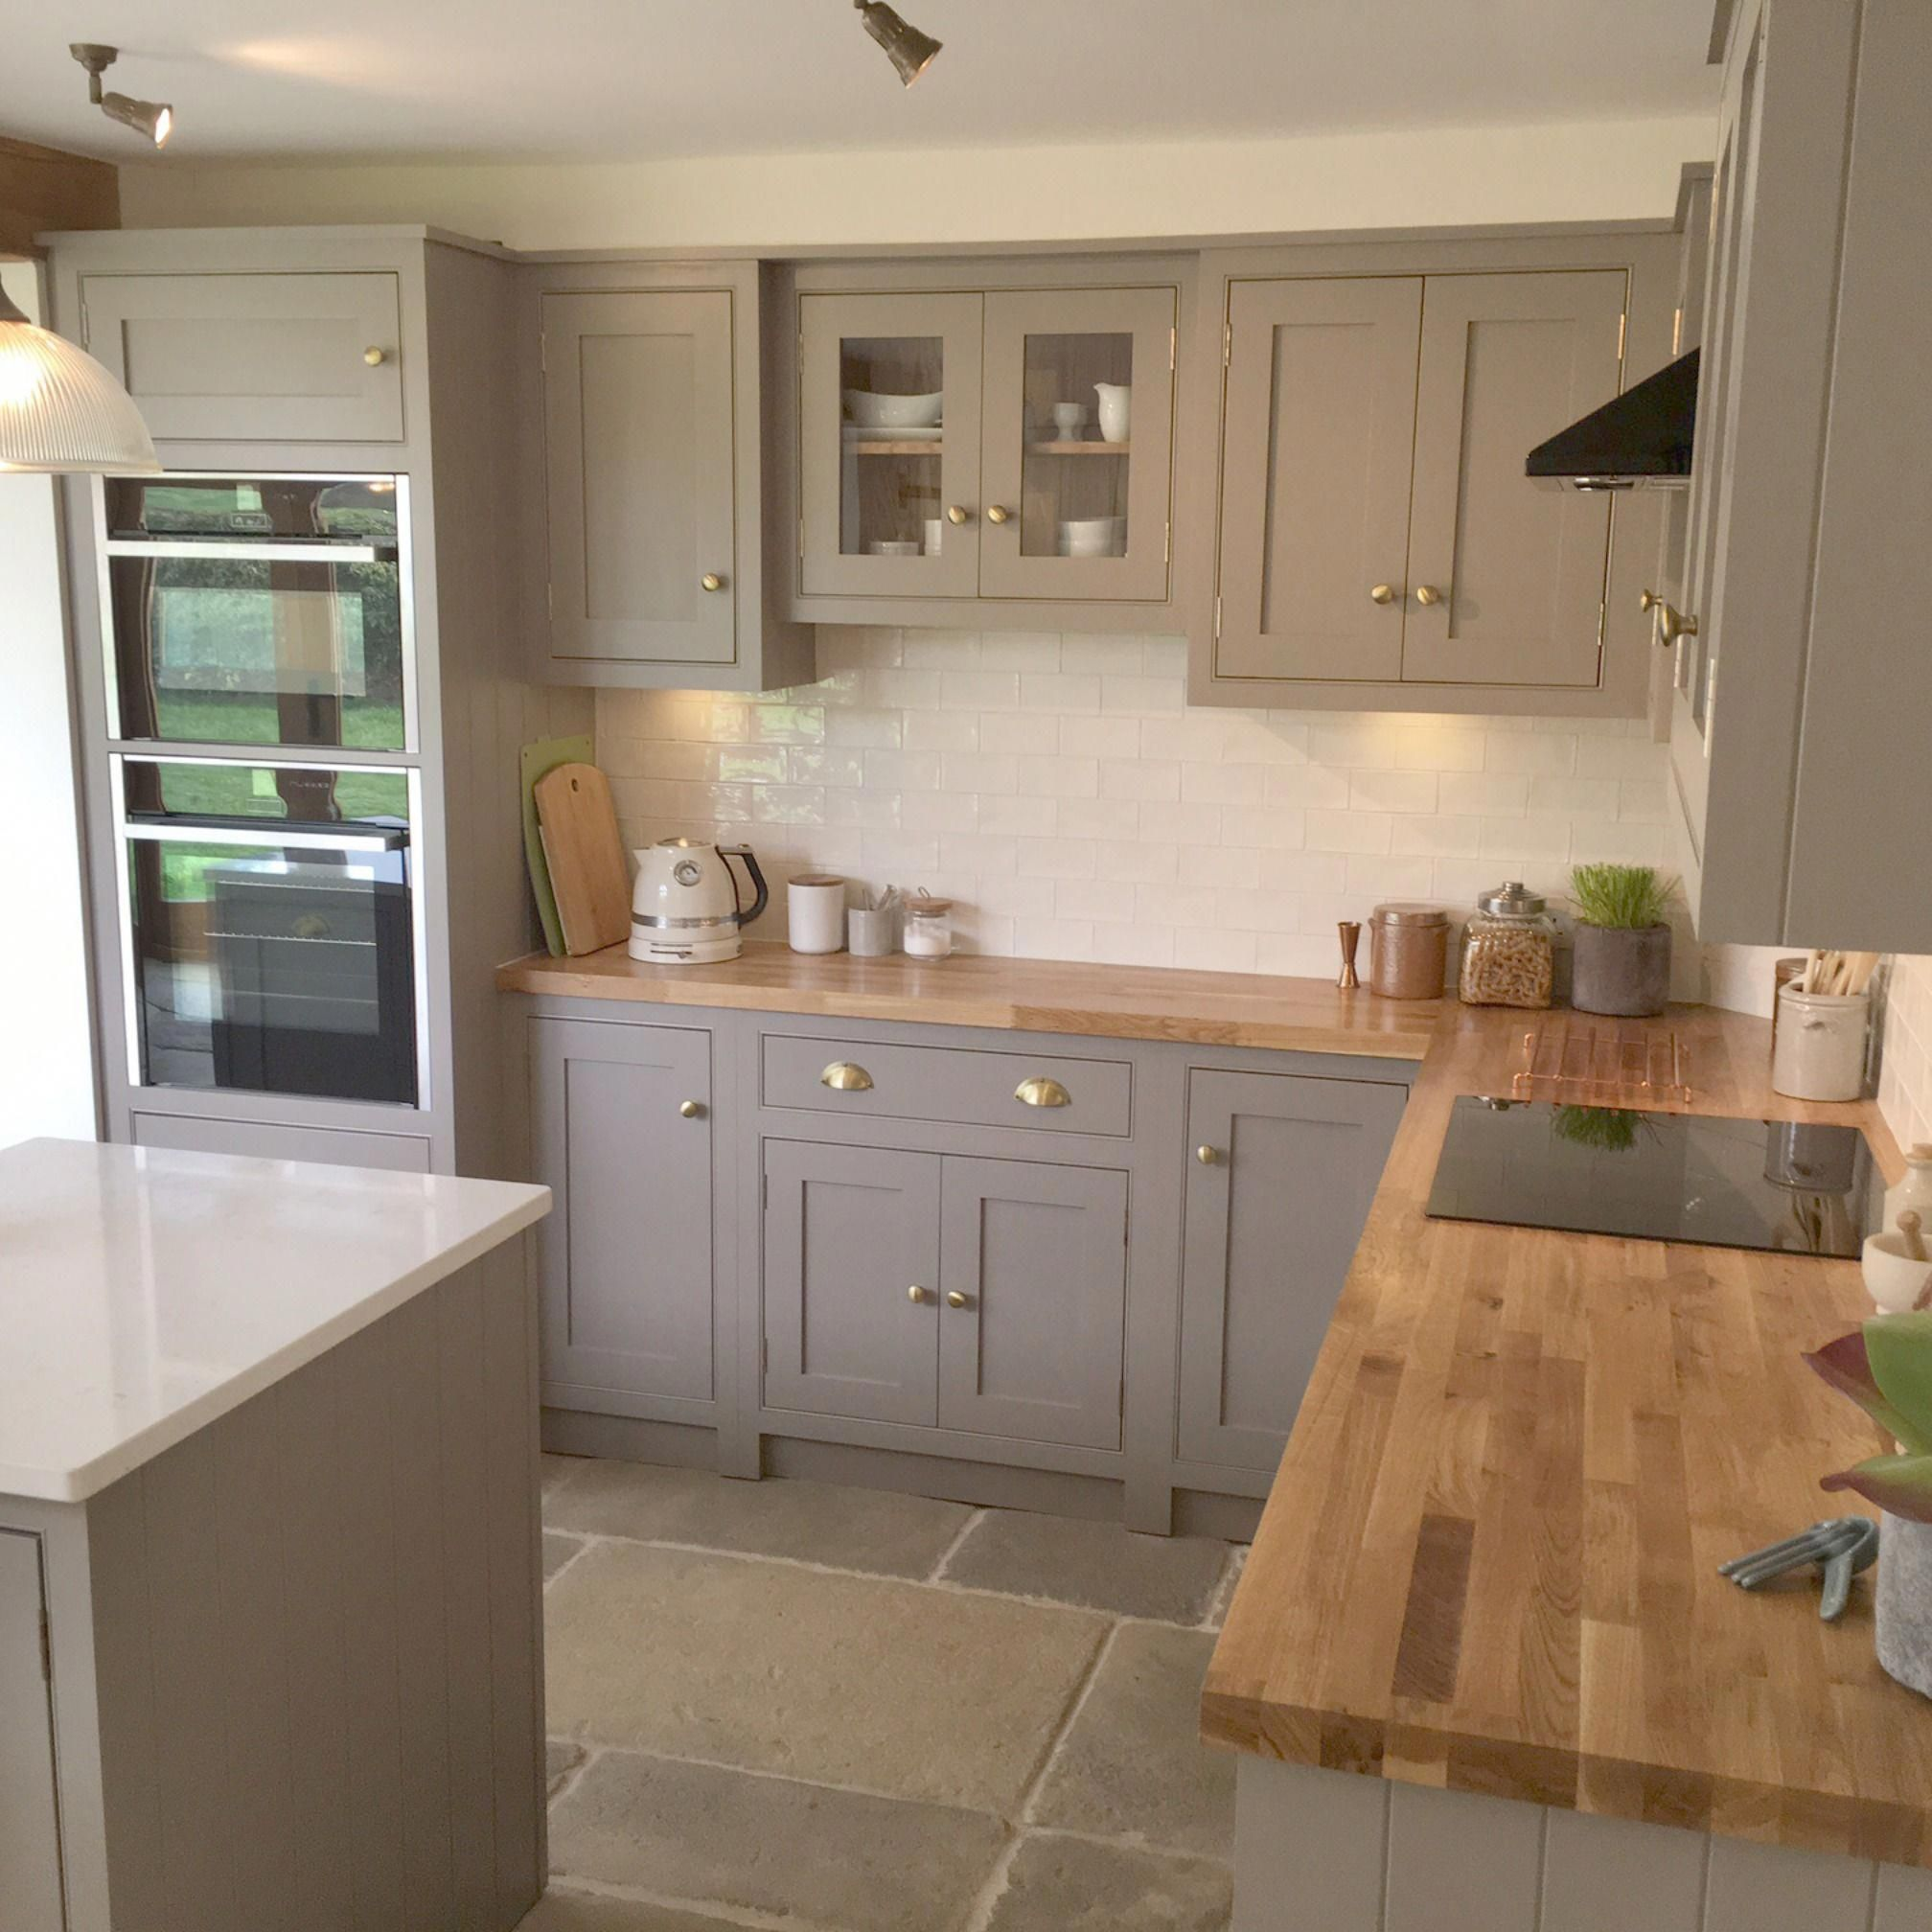 A Simply Beautiful Example Of A Country Cottage Kitchen Handmade Beaded Cabinets Painted In 2020 Country Cottage Kitchen Cottage Kitchens With Islands Kitchen Design